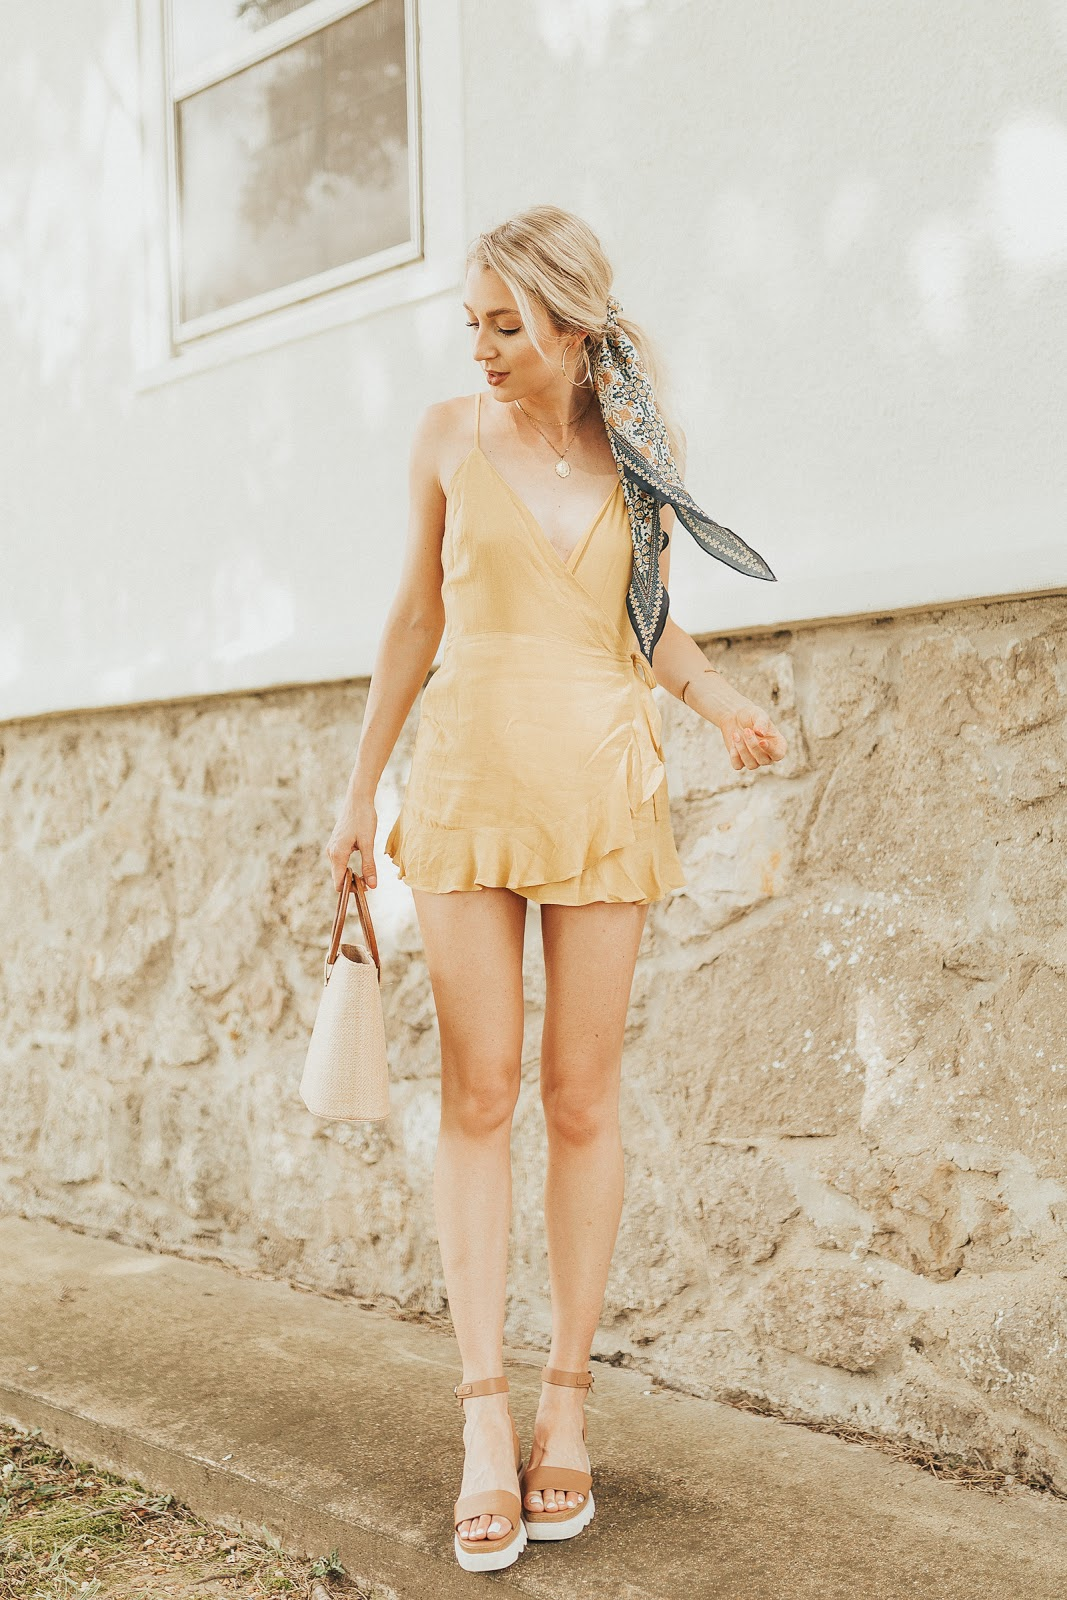 cute summer outfit: romper, hair scarf, platform sandals